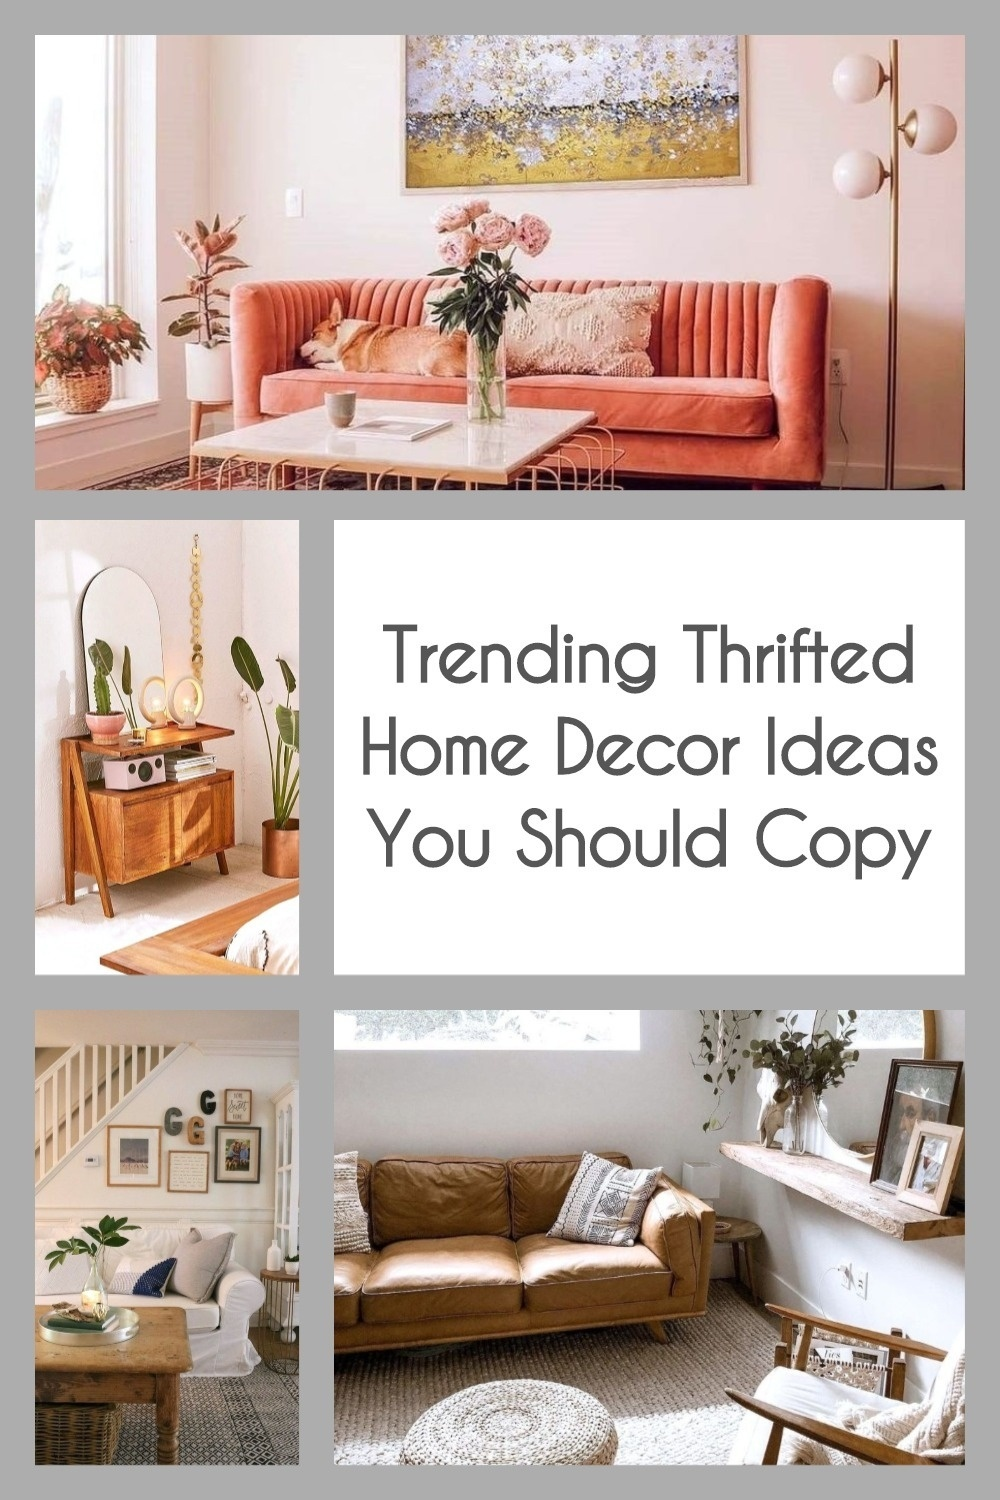 Trending Thrifted Home Decor Ideas You Should Copy